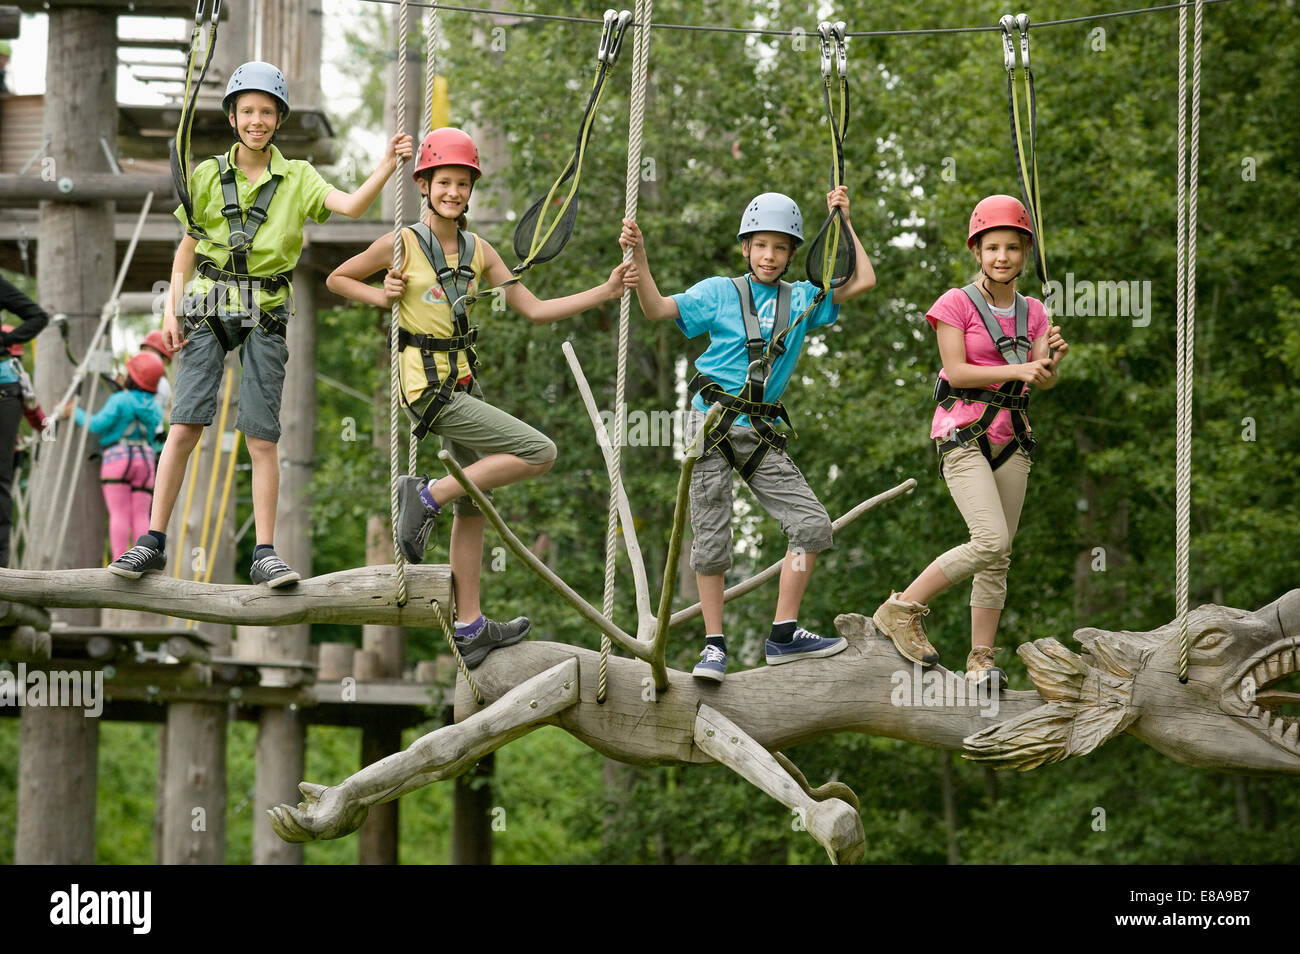 Childrens climbing on crag - Stock Image